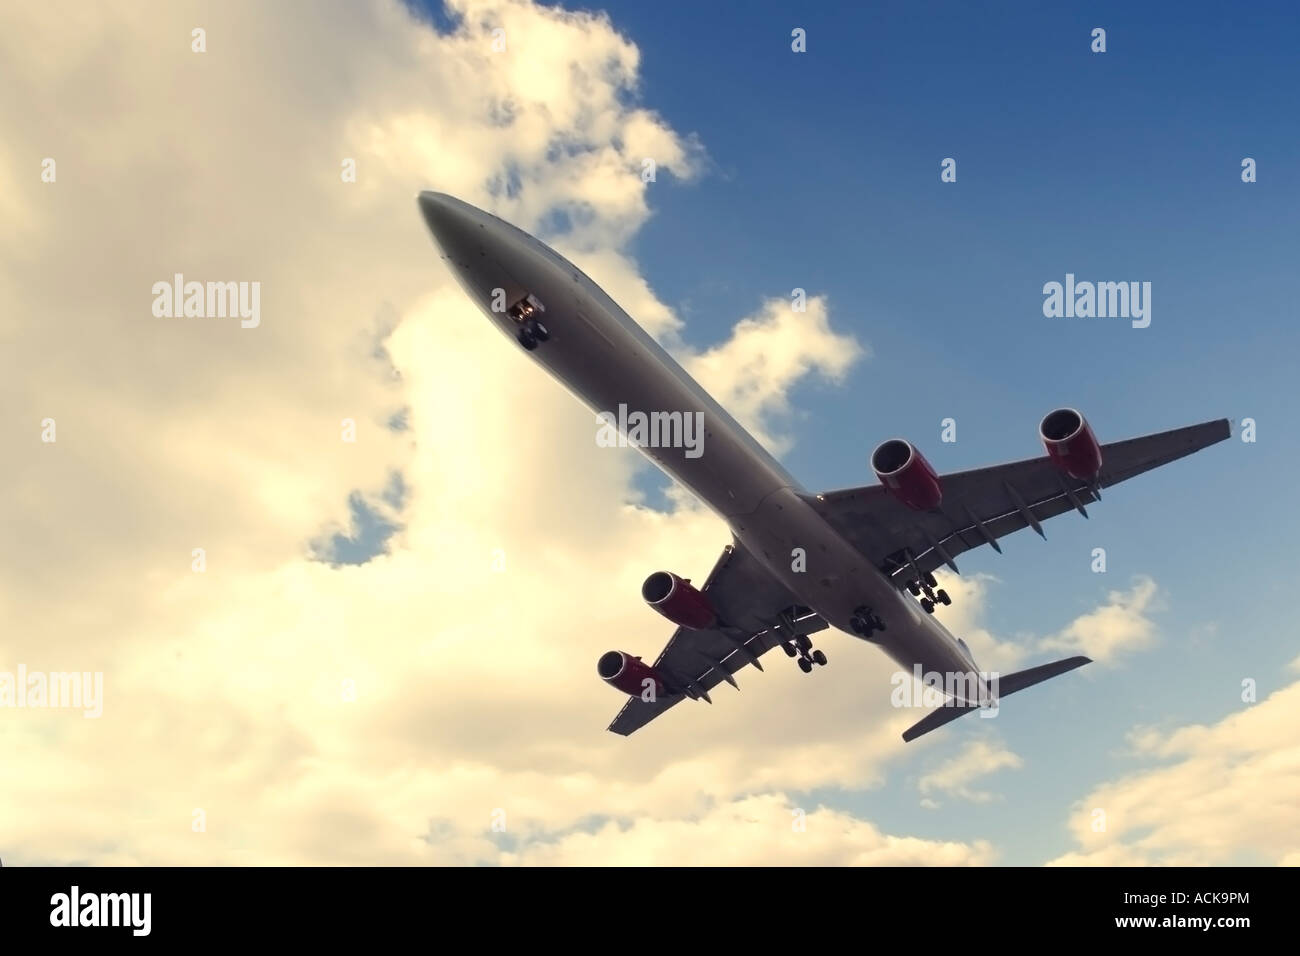 Wide angle view of commercial airliner - Stock Image